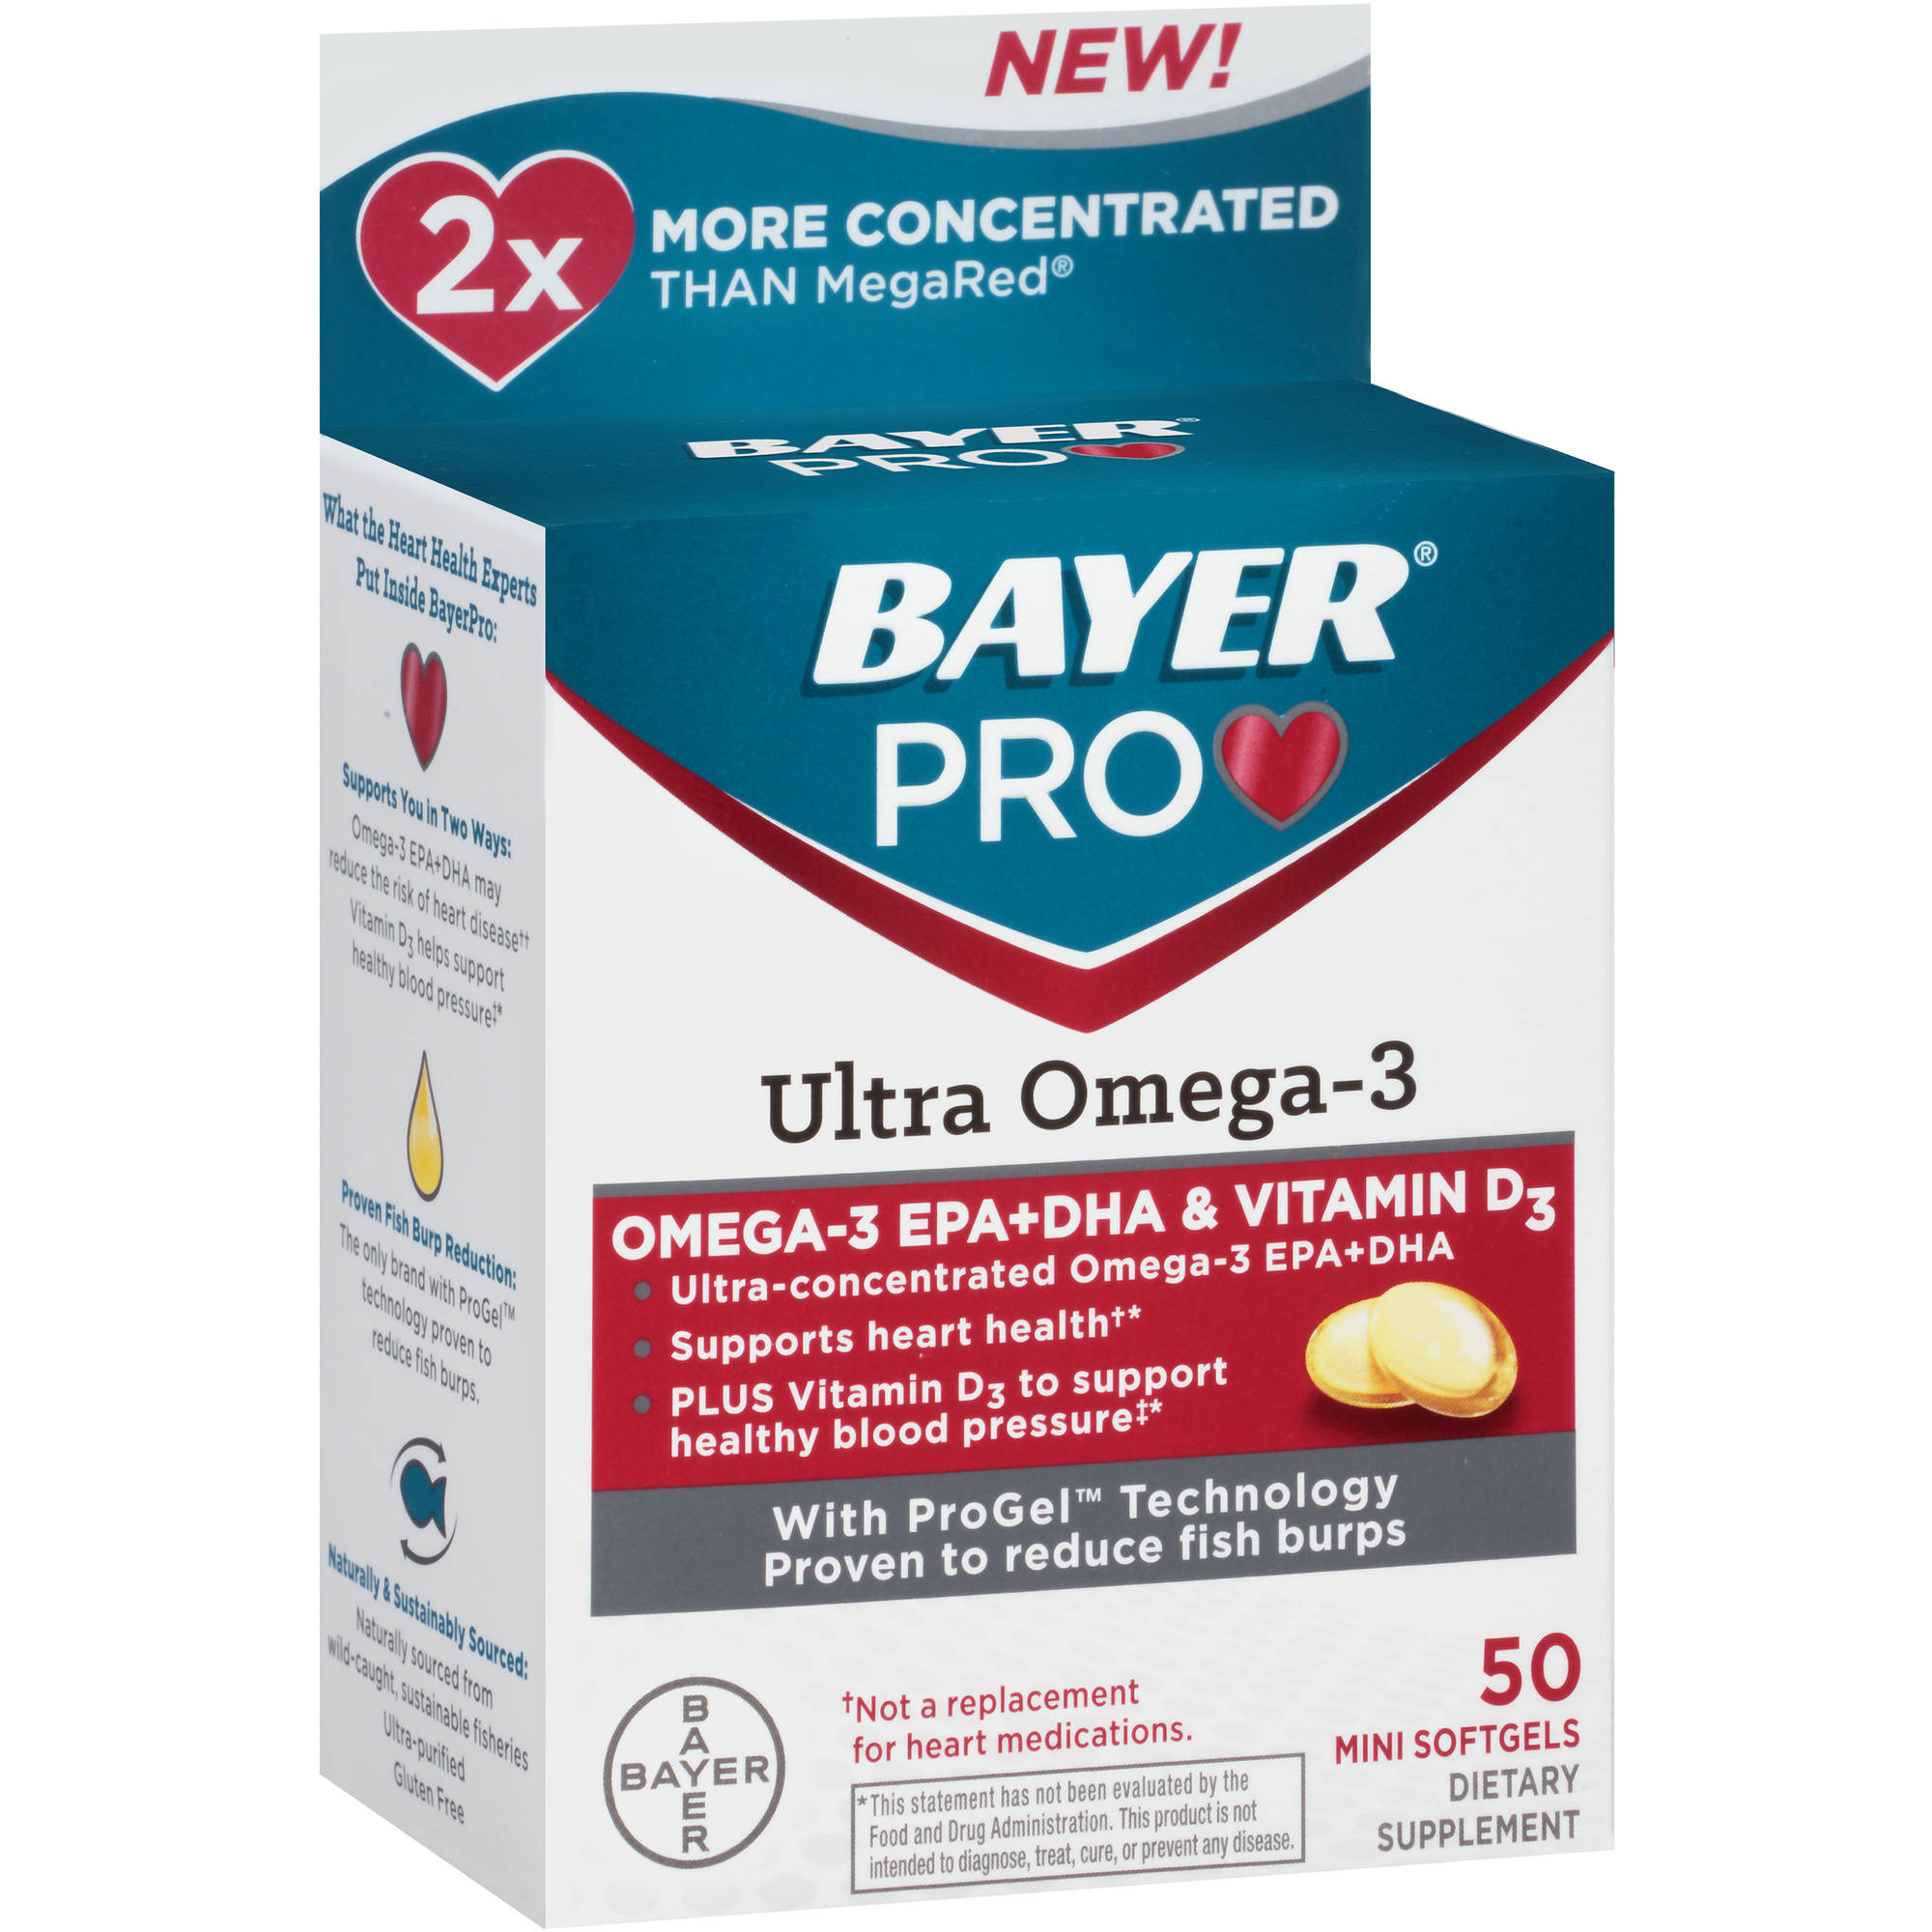 Bayer Pro Ultra Omega-3 Dietary Supplement Mini Softgels, 50 count